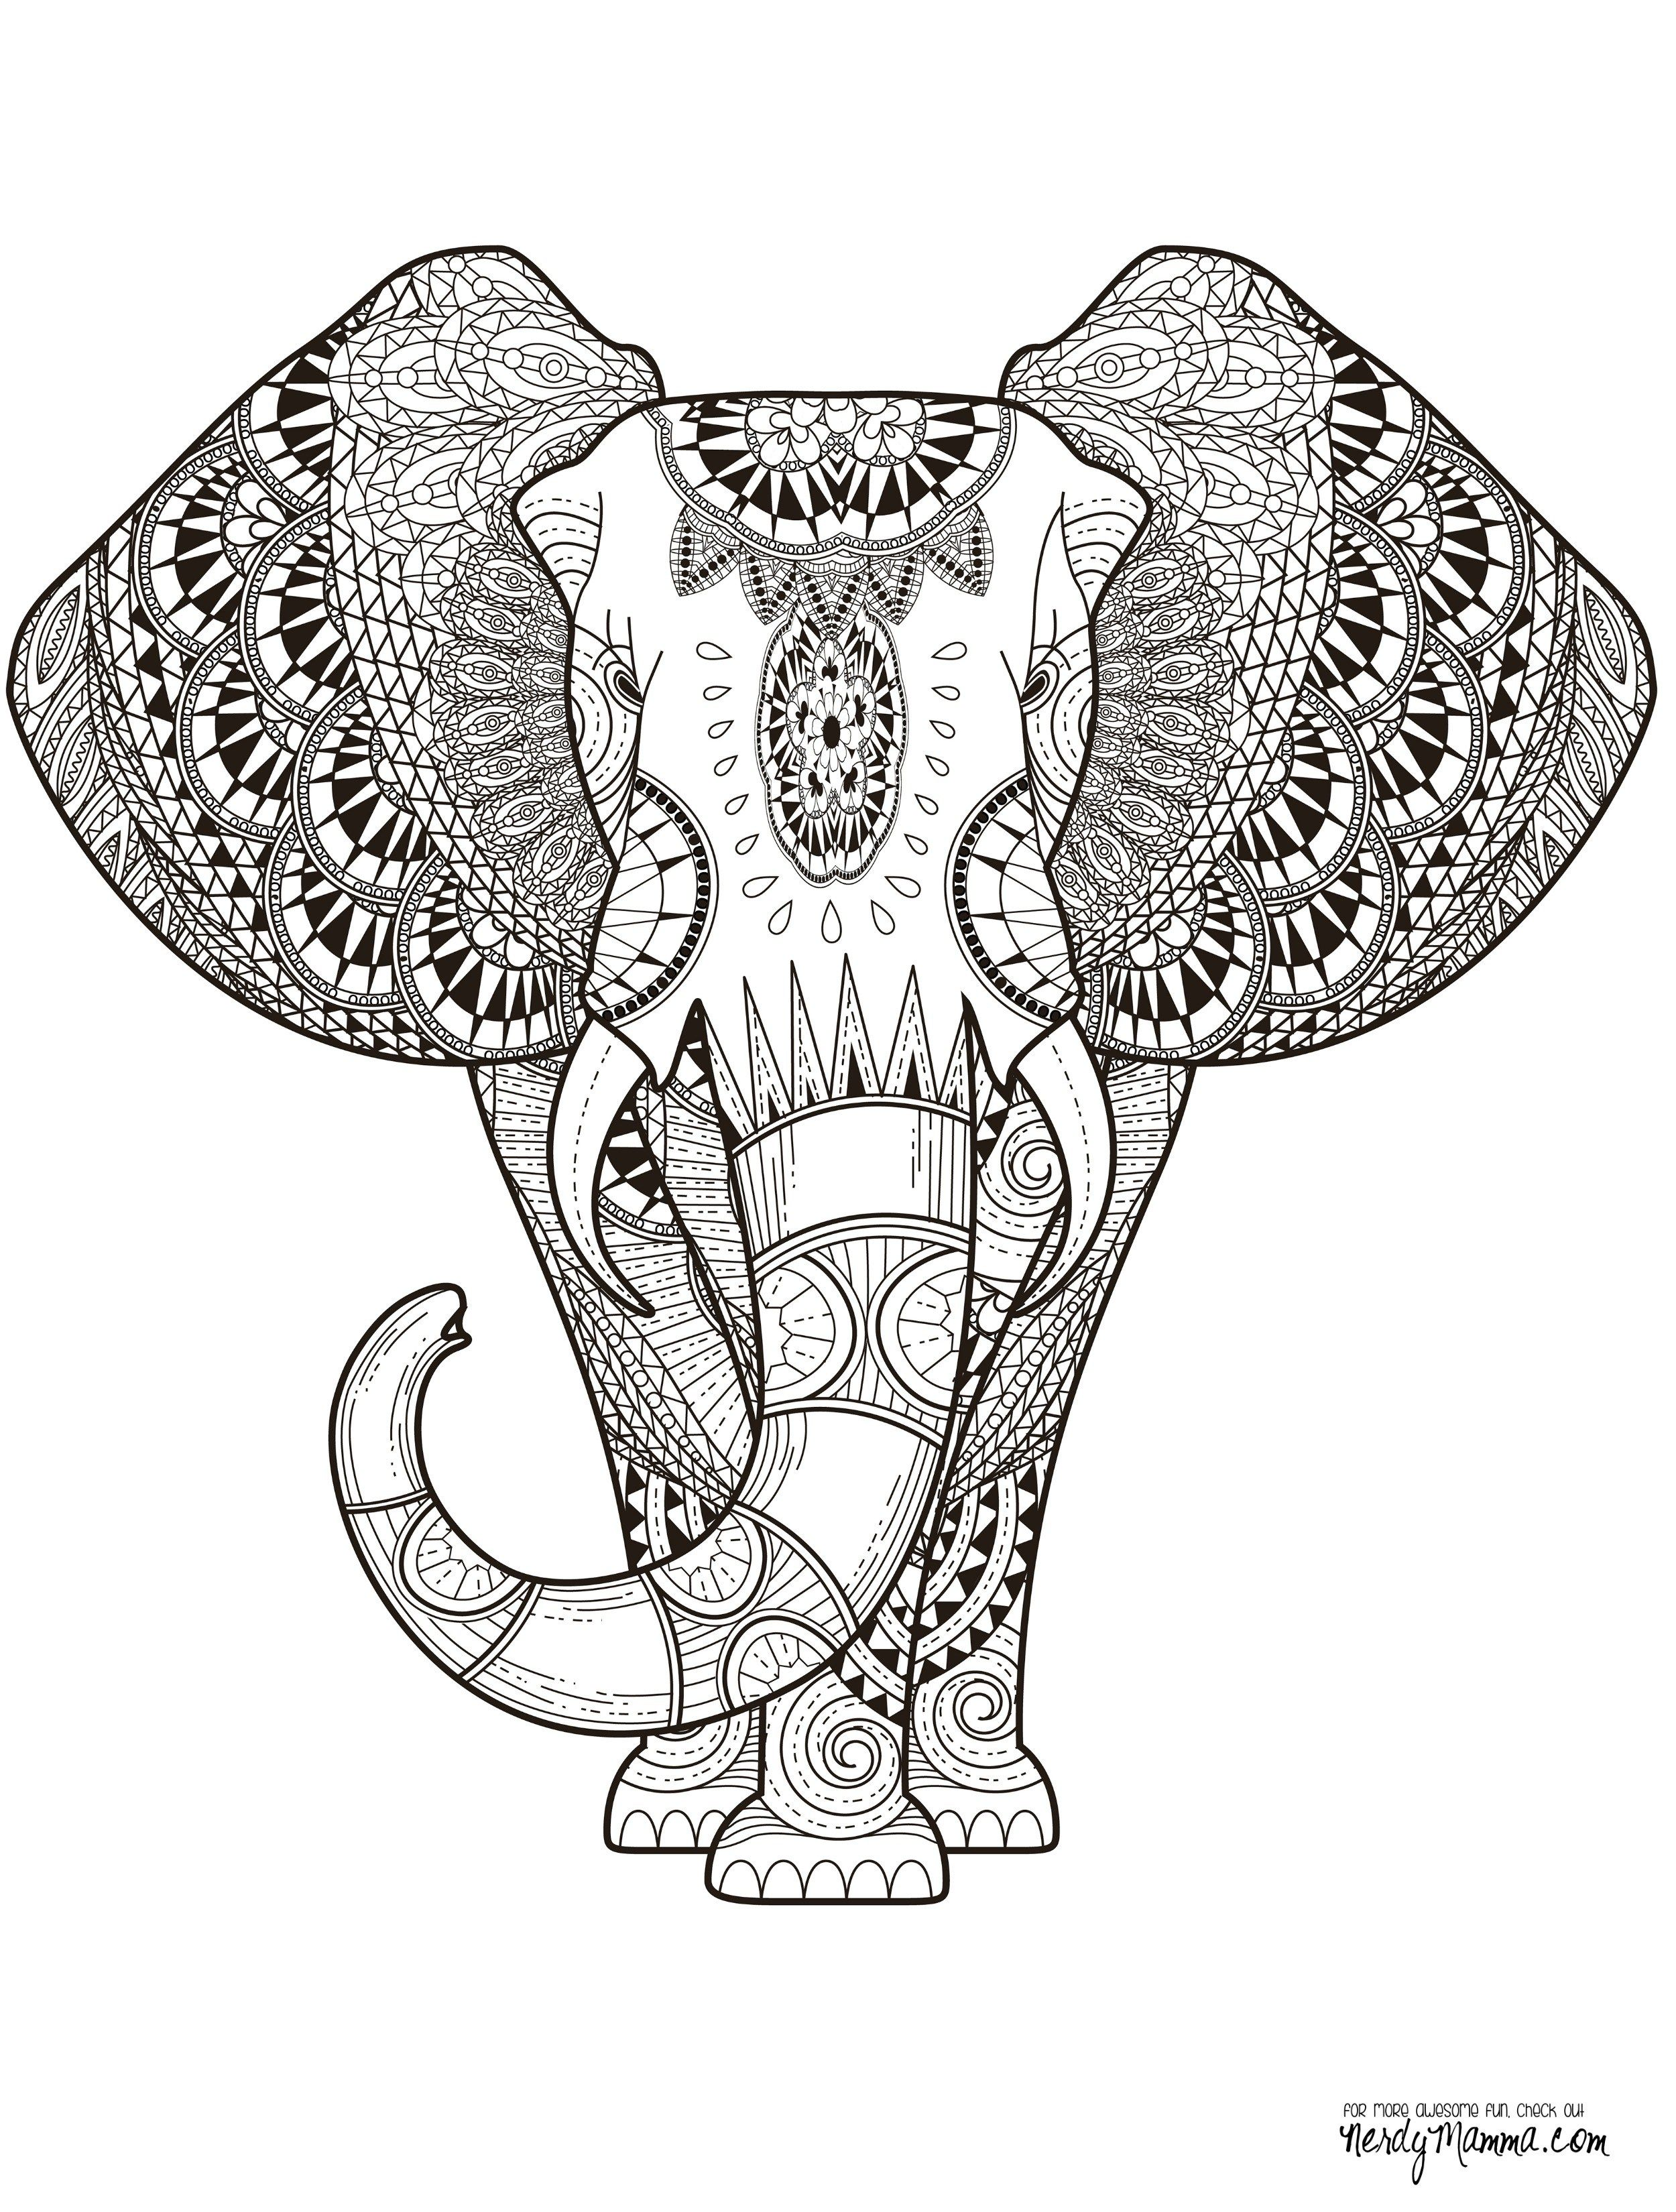 elephant abstract doodle zentangle paisley coloring pages colouring adult detailed advanced. Black Bedroom Furniture Sets. Home Design Ideas